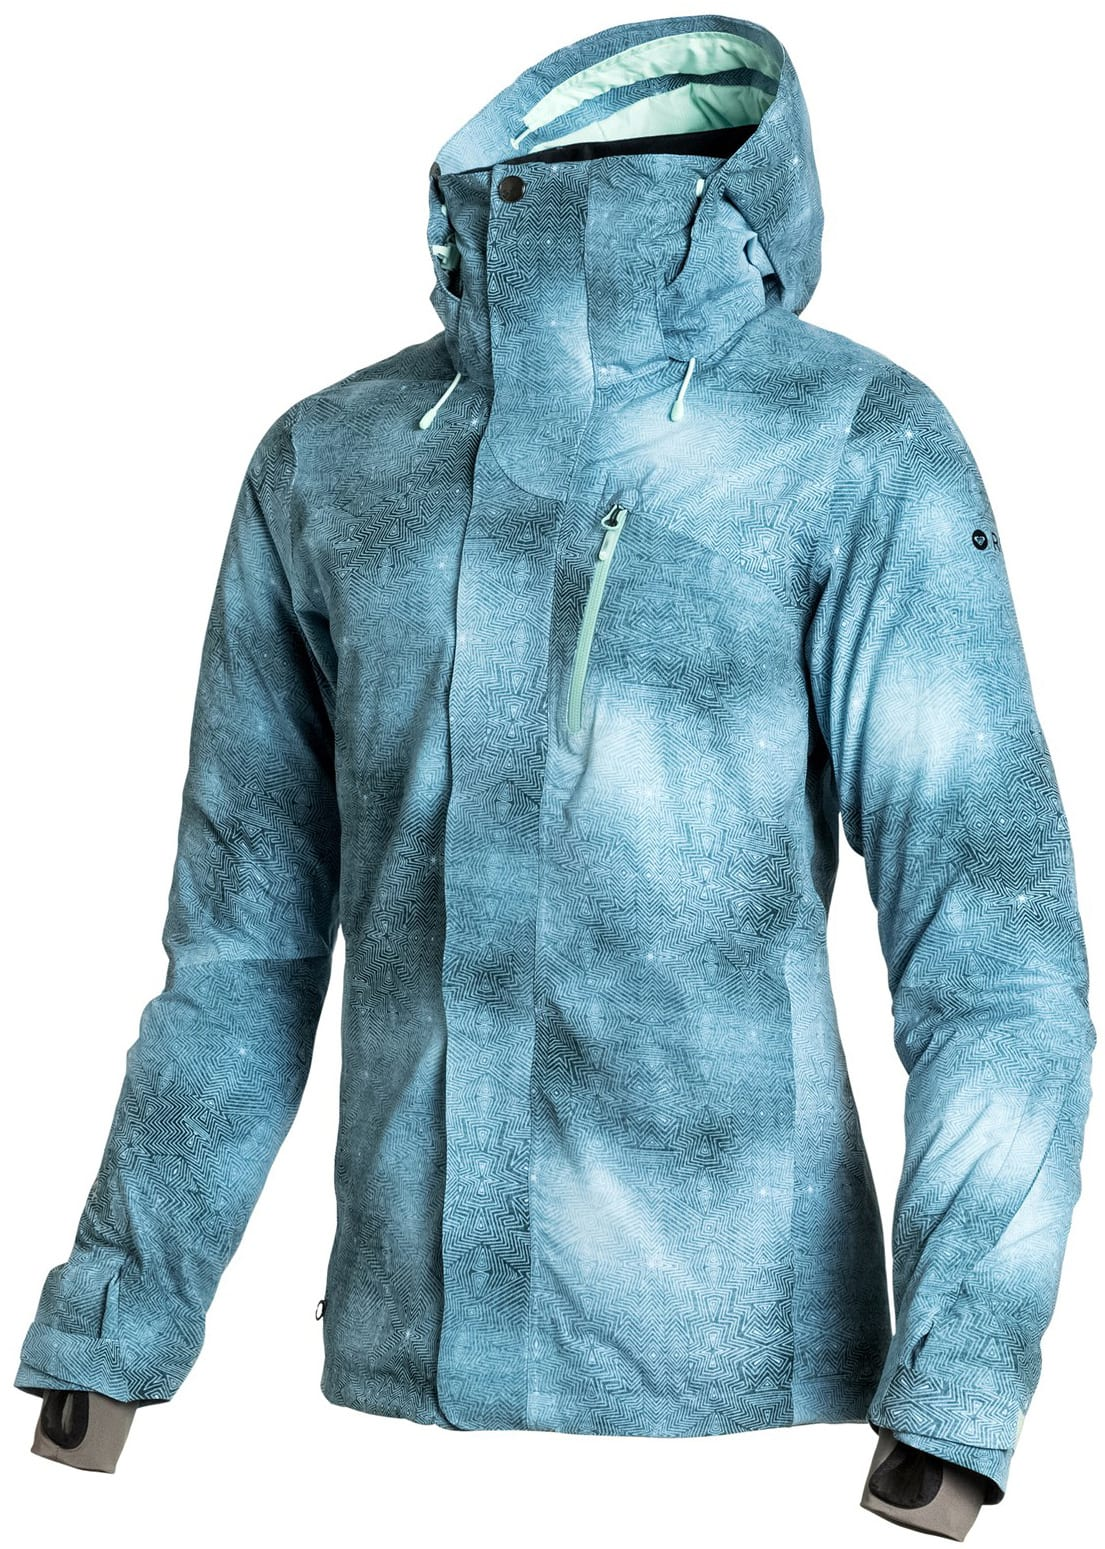 Ski Bike For Sale >> On Sale Roxy Wilder 2L Gore-Tex Printed Snowboard Jacket - Womens up to 45% off